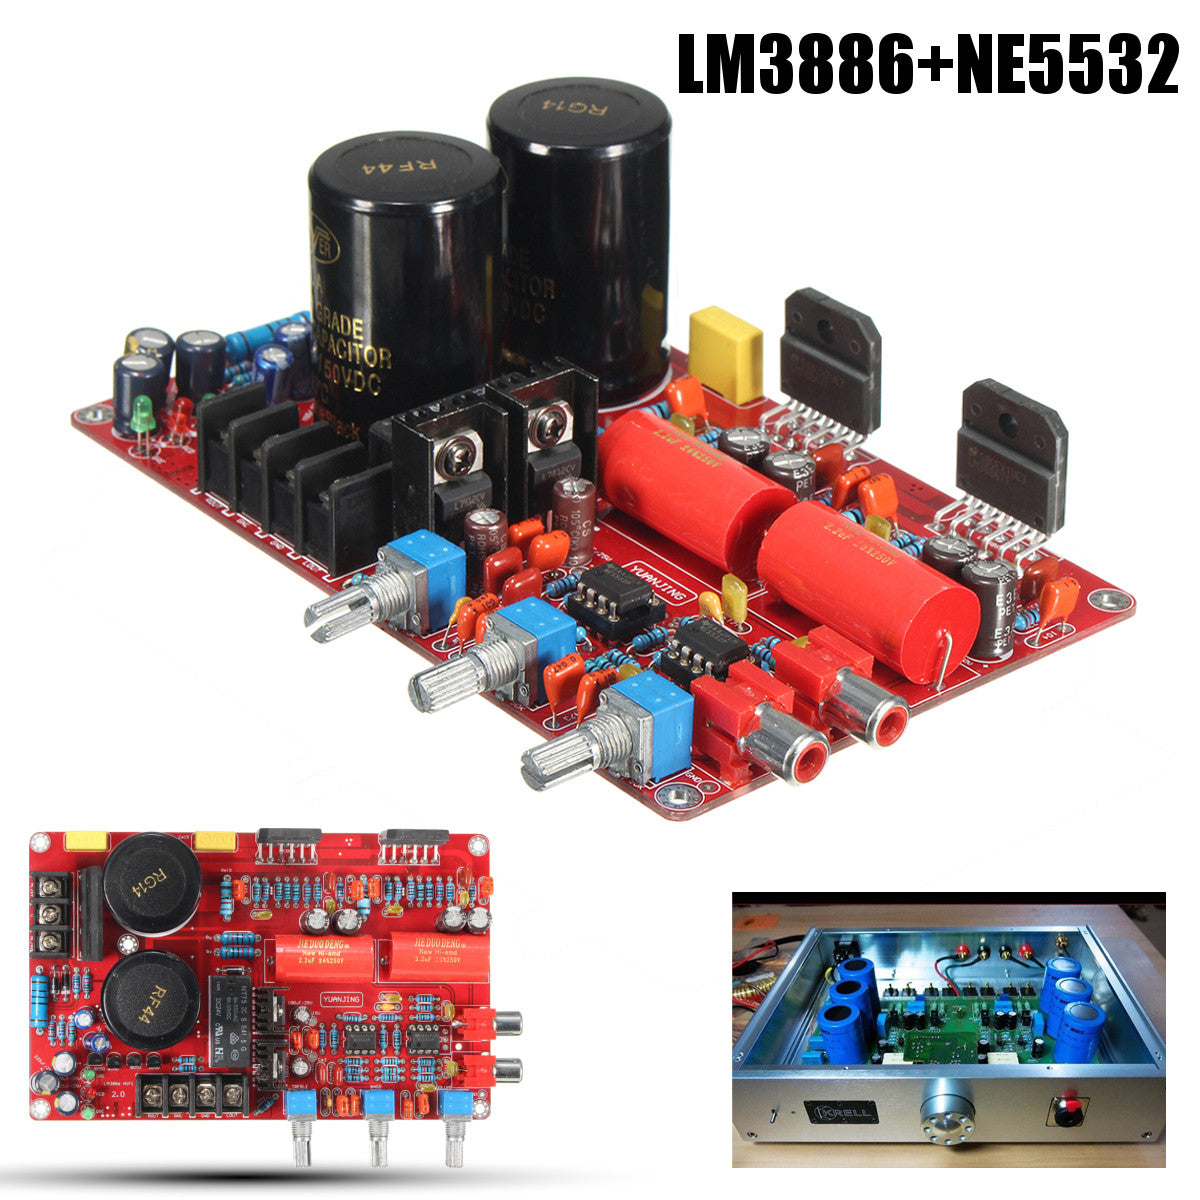 12v Boost To 32vdc 180w Power Supply Inverter Tl494 Irfz44n For 8 Ohm Amplifier With 60w Output Ac20v 28v Lm3886 Ne5532 68w 4 Amp